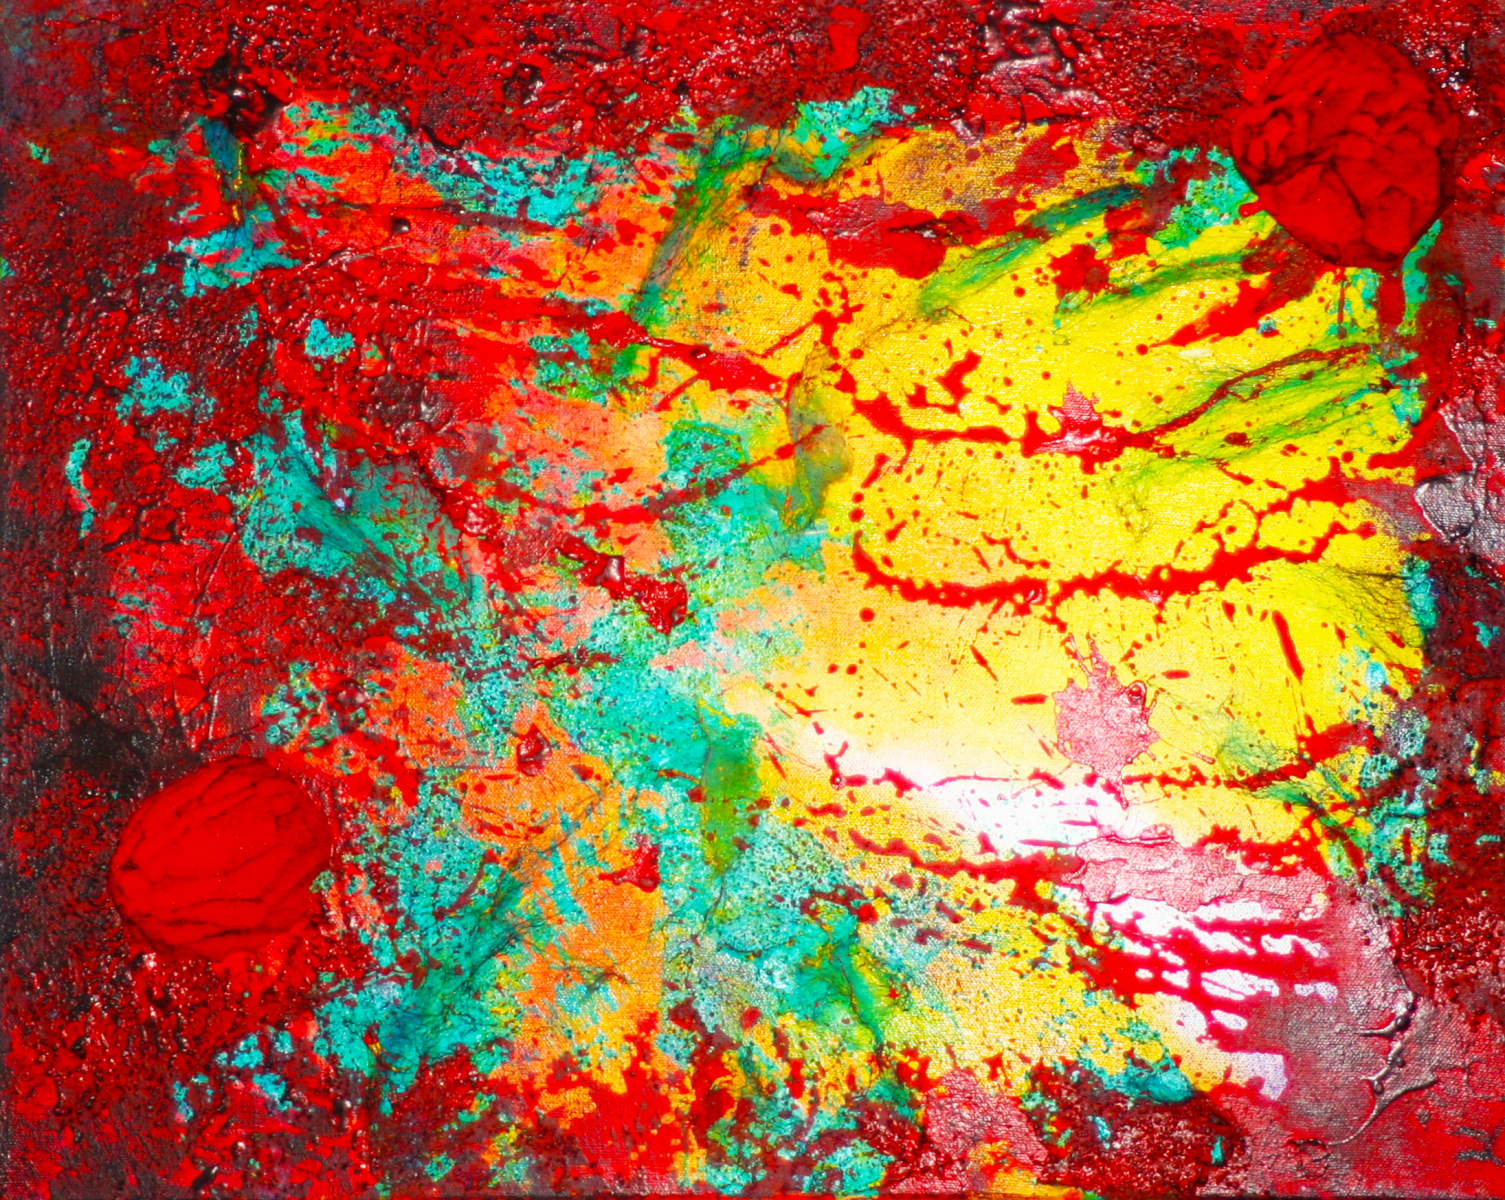 96_2015_Red-Explosion-I_50-x-40